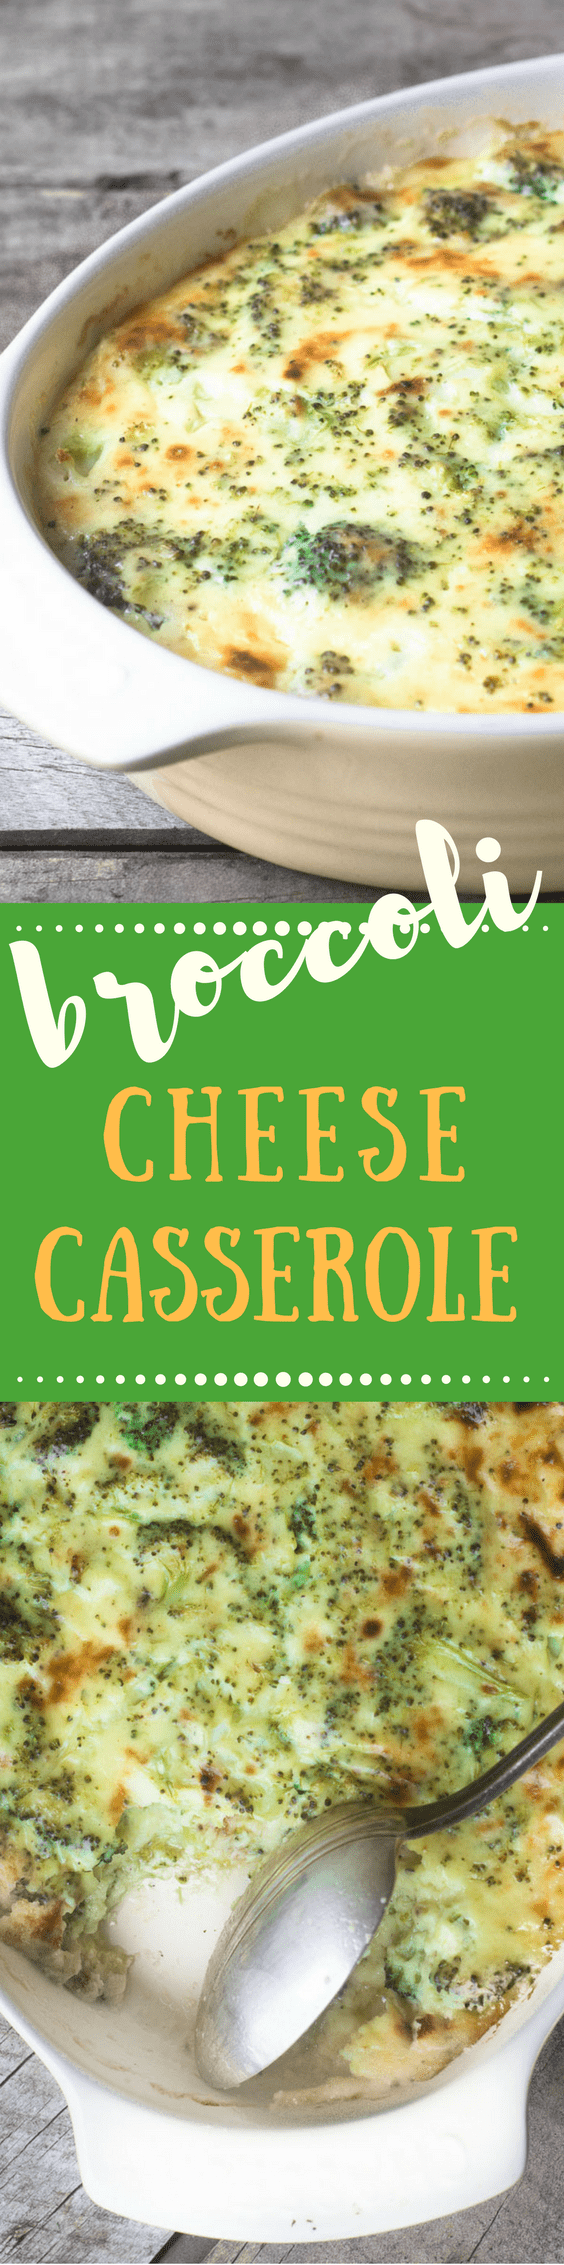 Broccoli Cheese Casserole is the ultimate comfort! ~ theviewfromgreatisland.com